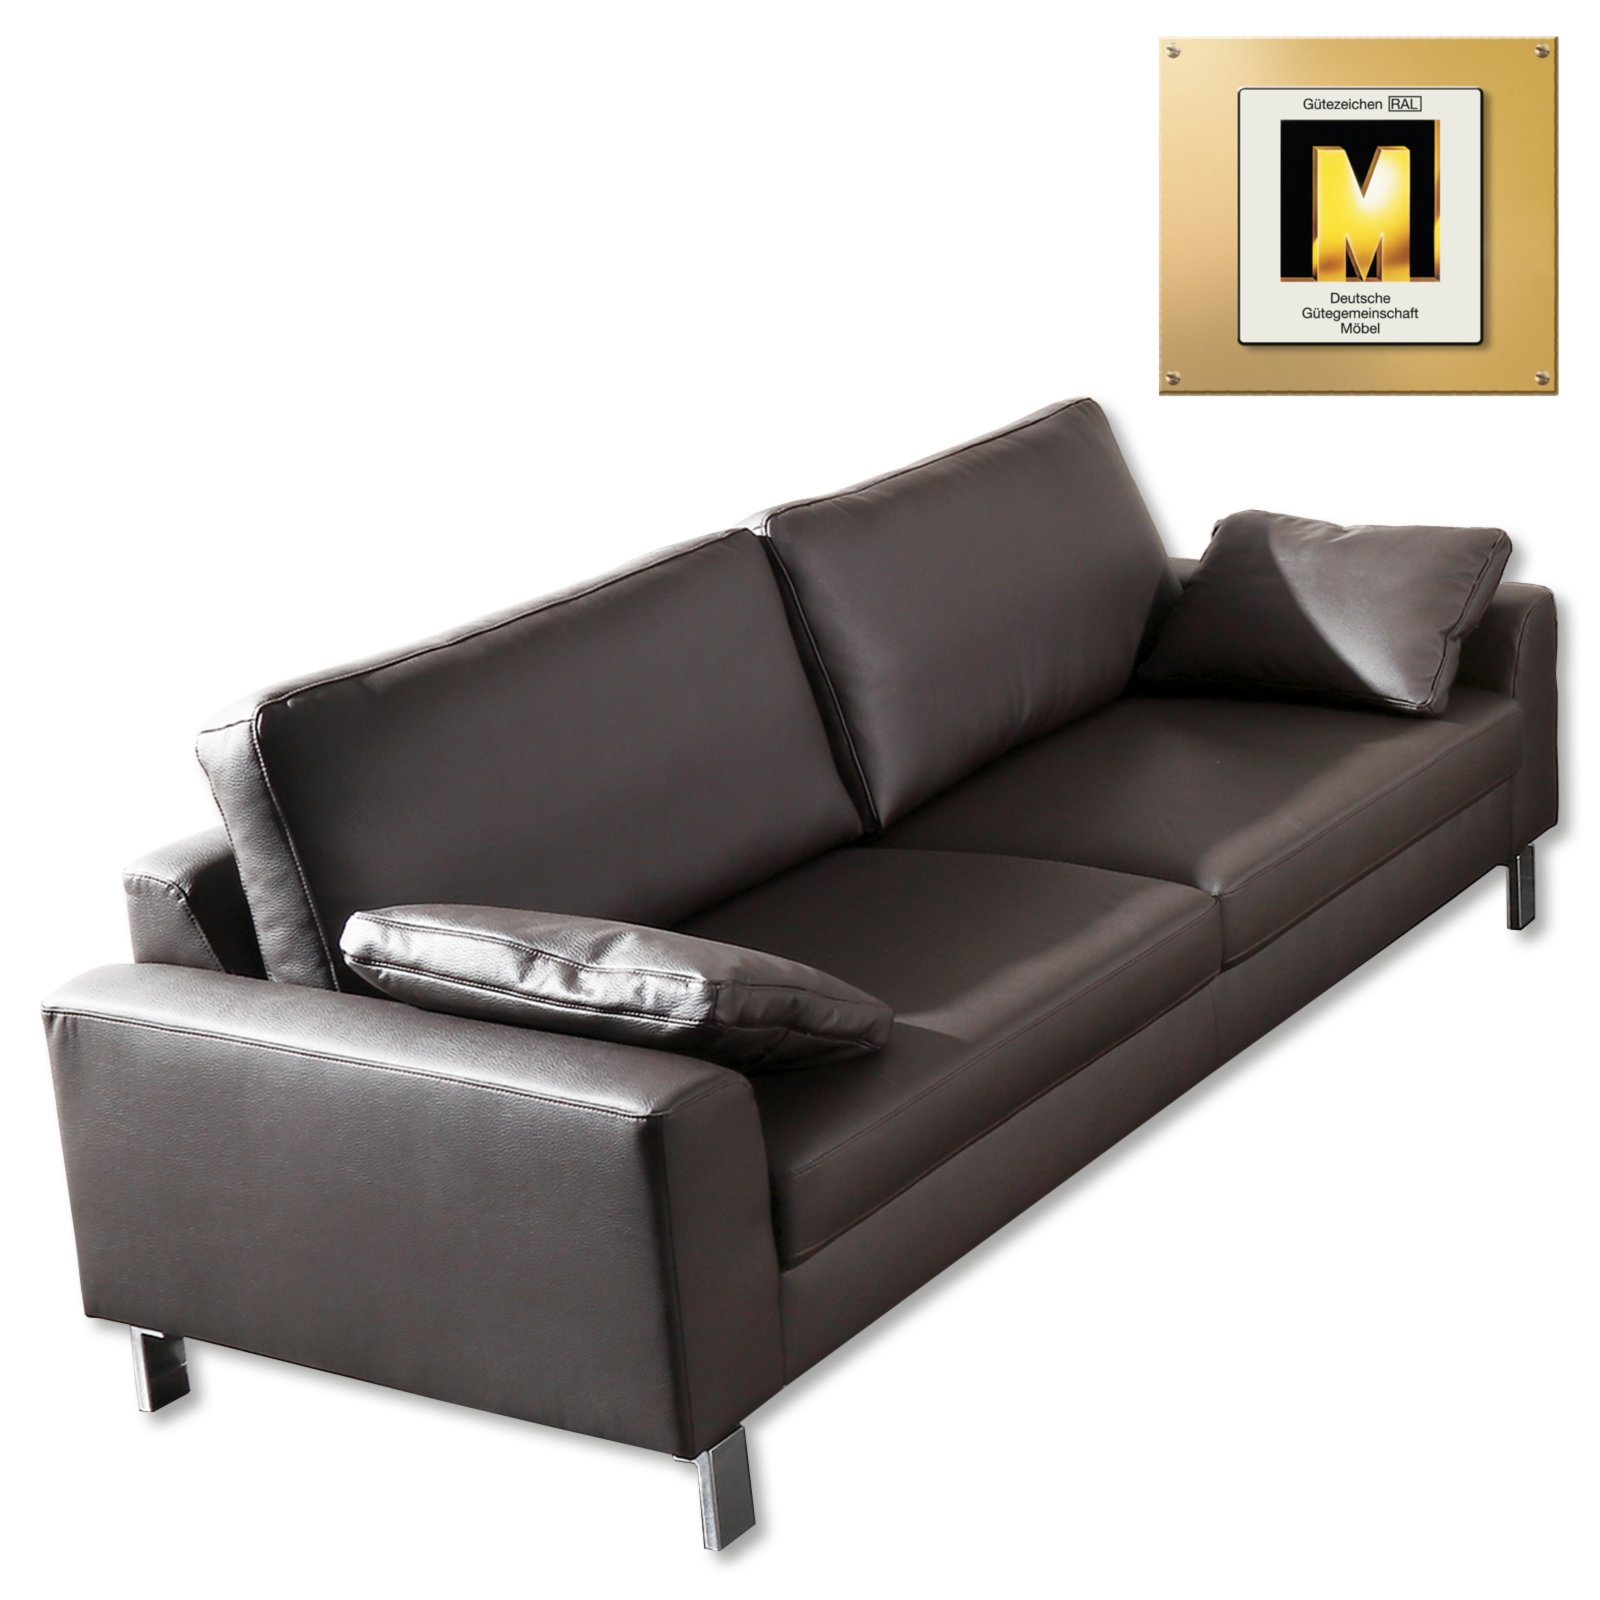 erfreut 3 er sofas fotos die besten einrichtungsideen. Black Bedroom Furniture Sets. Home Design Ideas